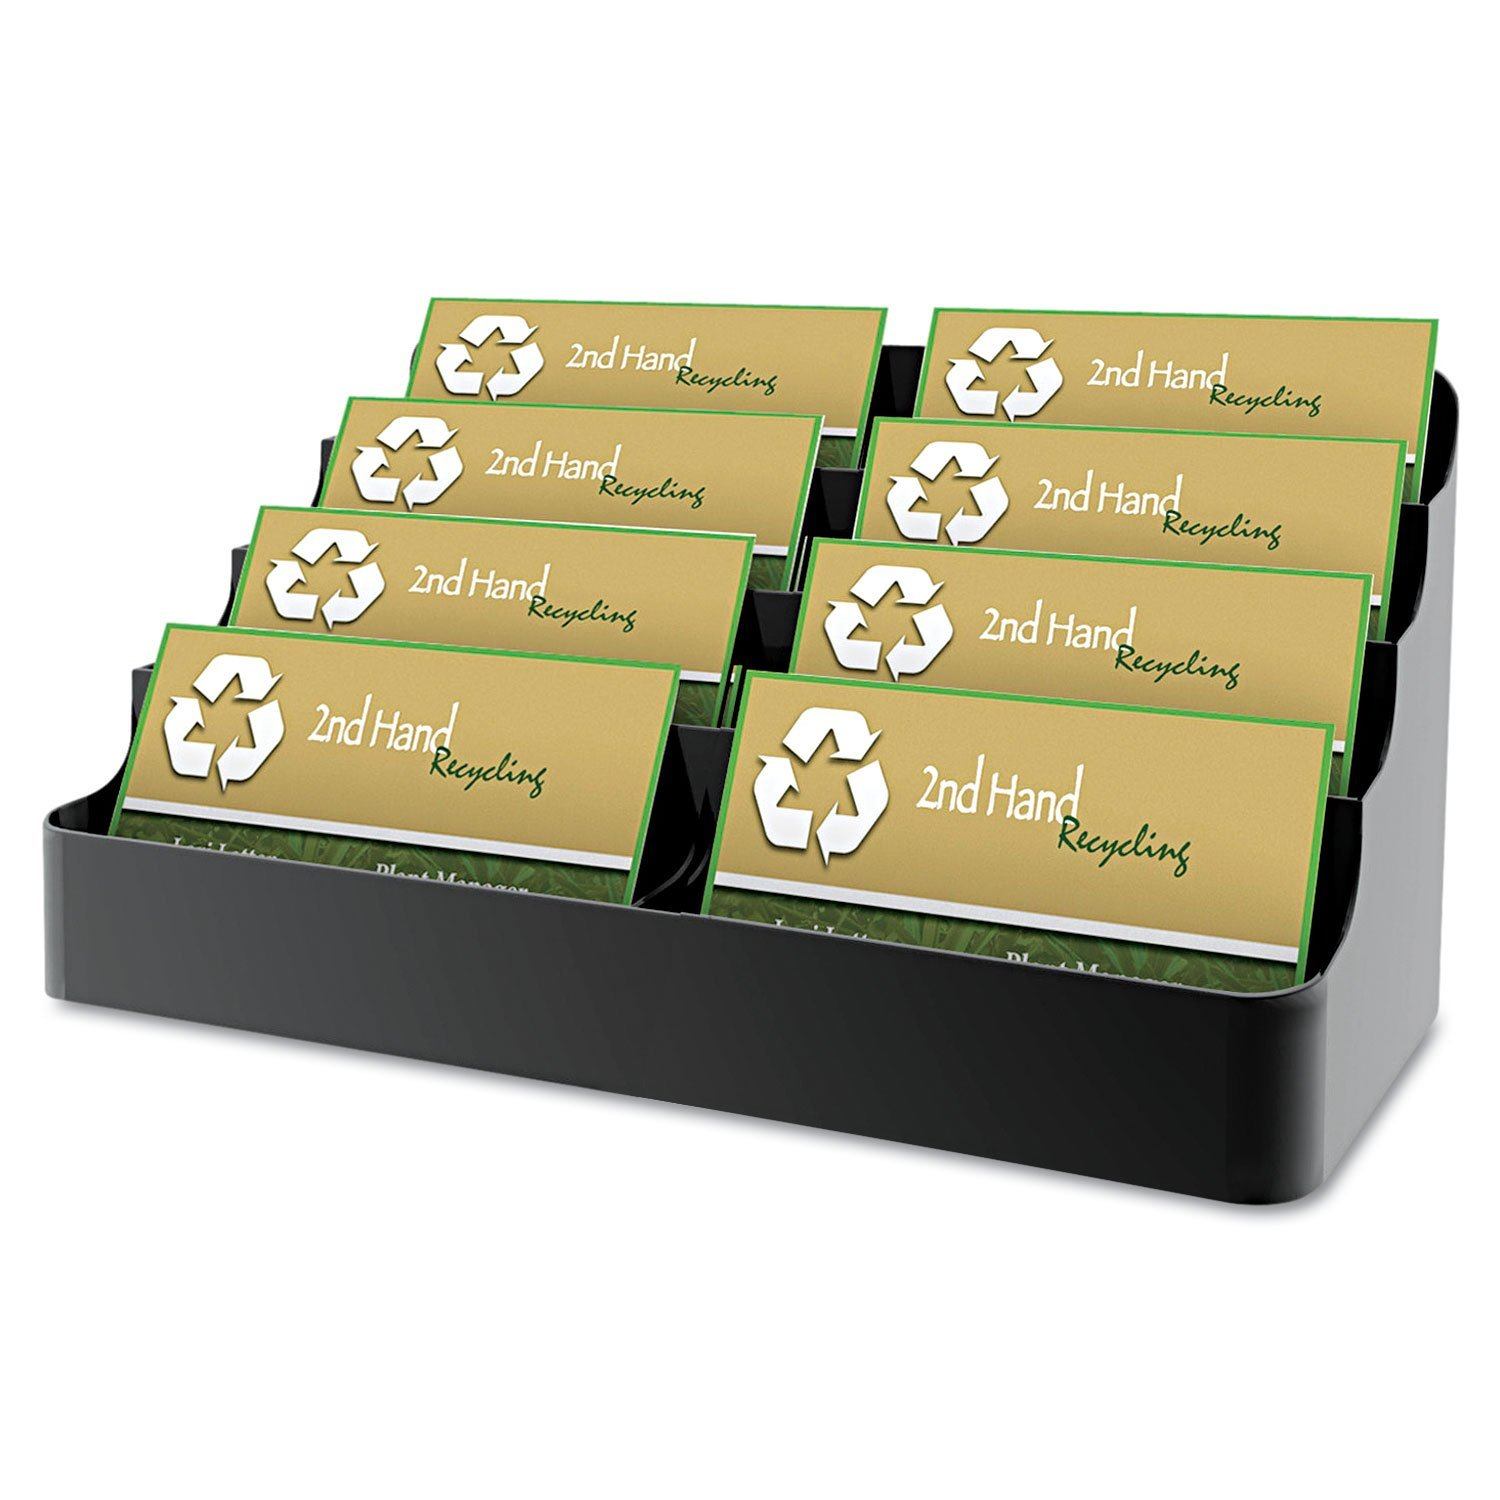 Recycled Business Card Holder, Holds 450 2 x 3 1/2 Cards, Eight-Pocket, Black, Sold as 1 EA. Ideal for doctors' offices, travel agencies, retail outlets and more. By Marketing Holders Ship from US